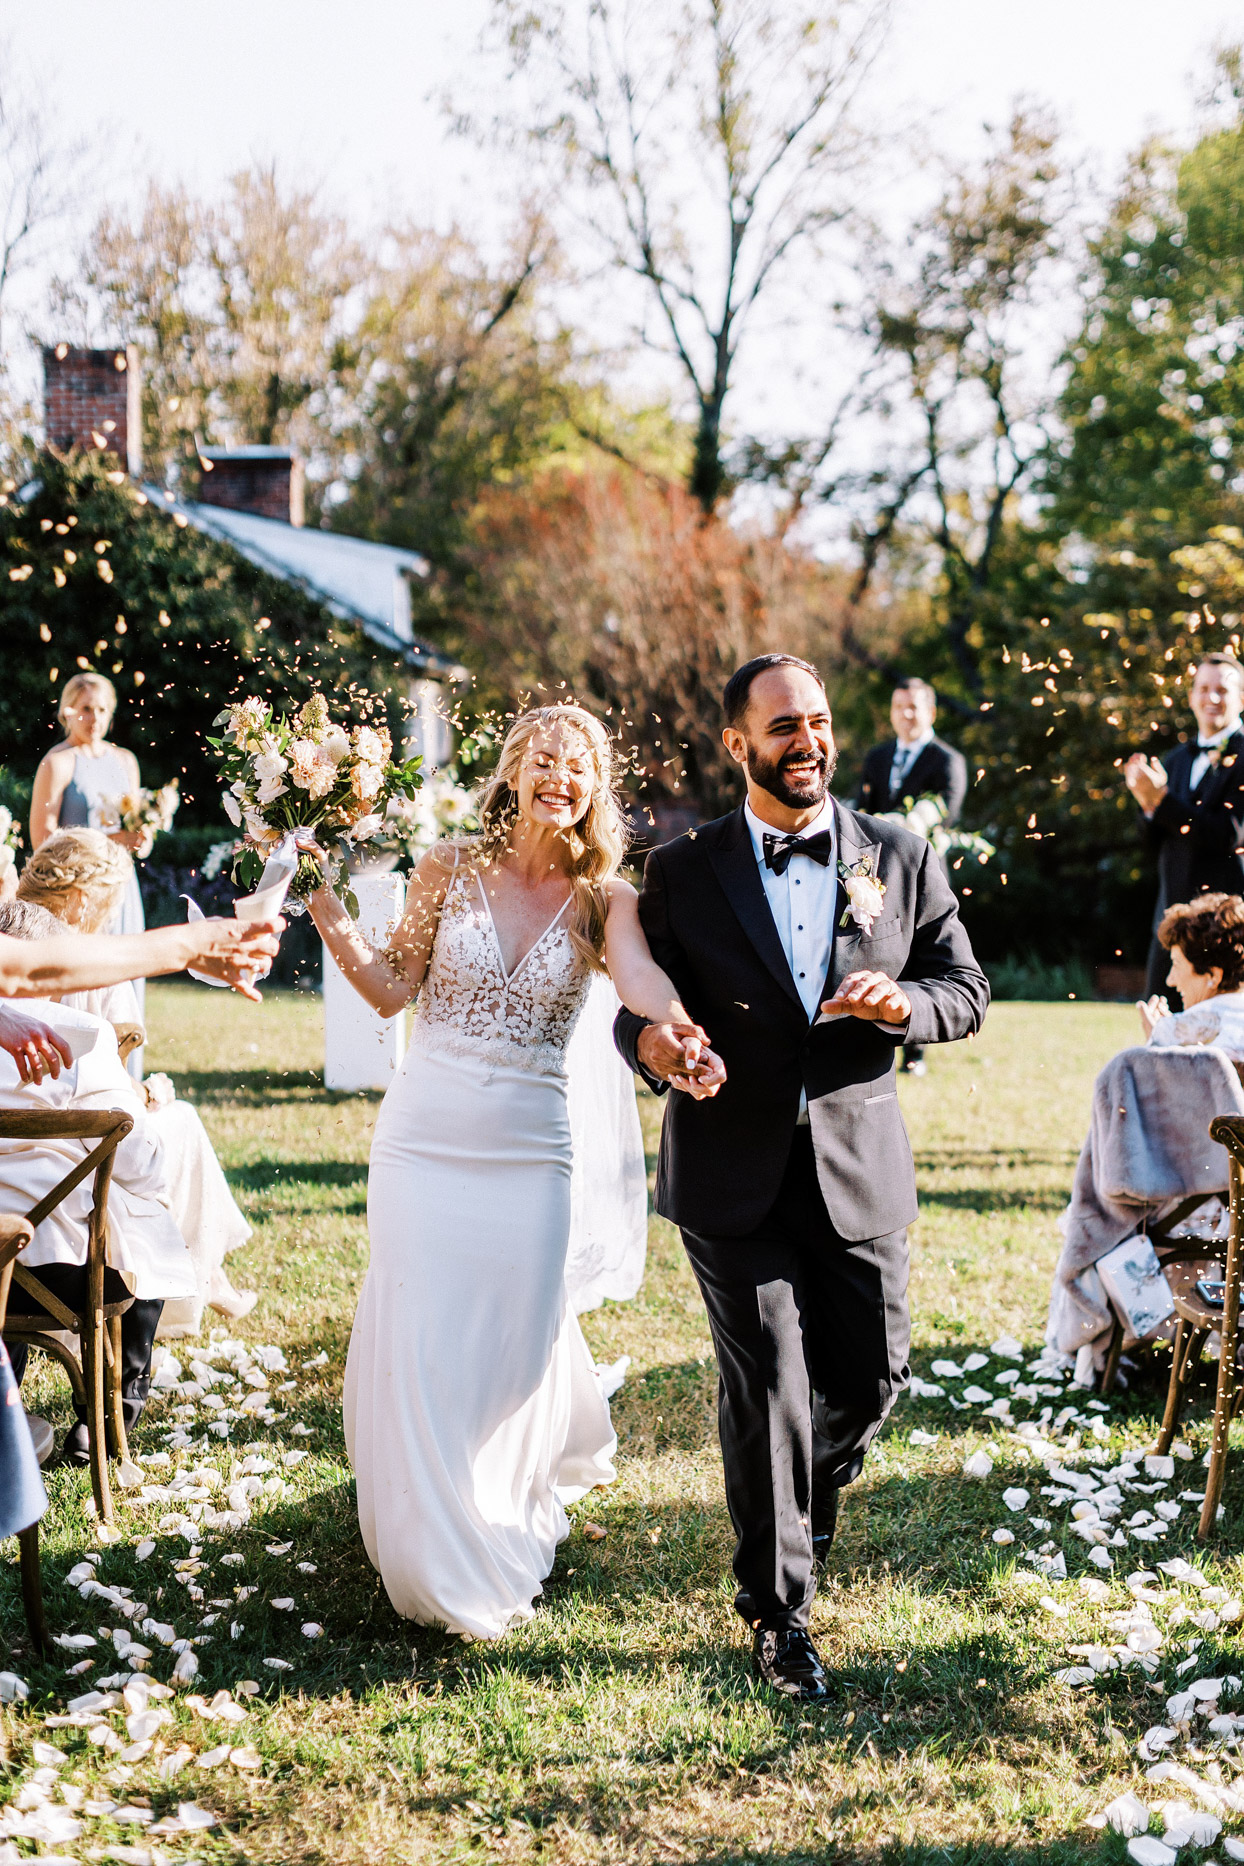 couple recessing at outdoor ceremony while guests shower them in flower petals